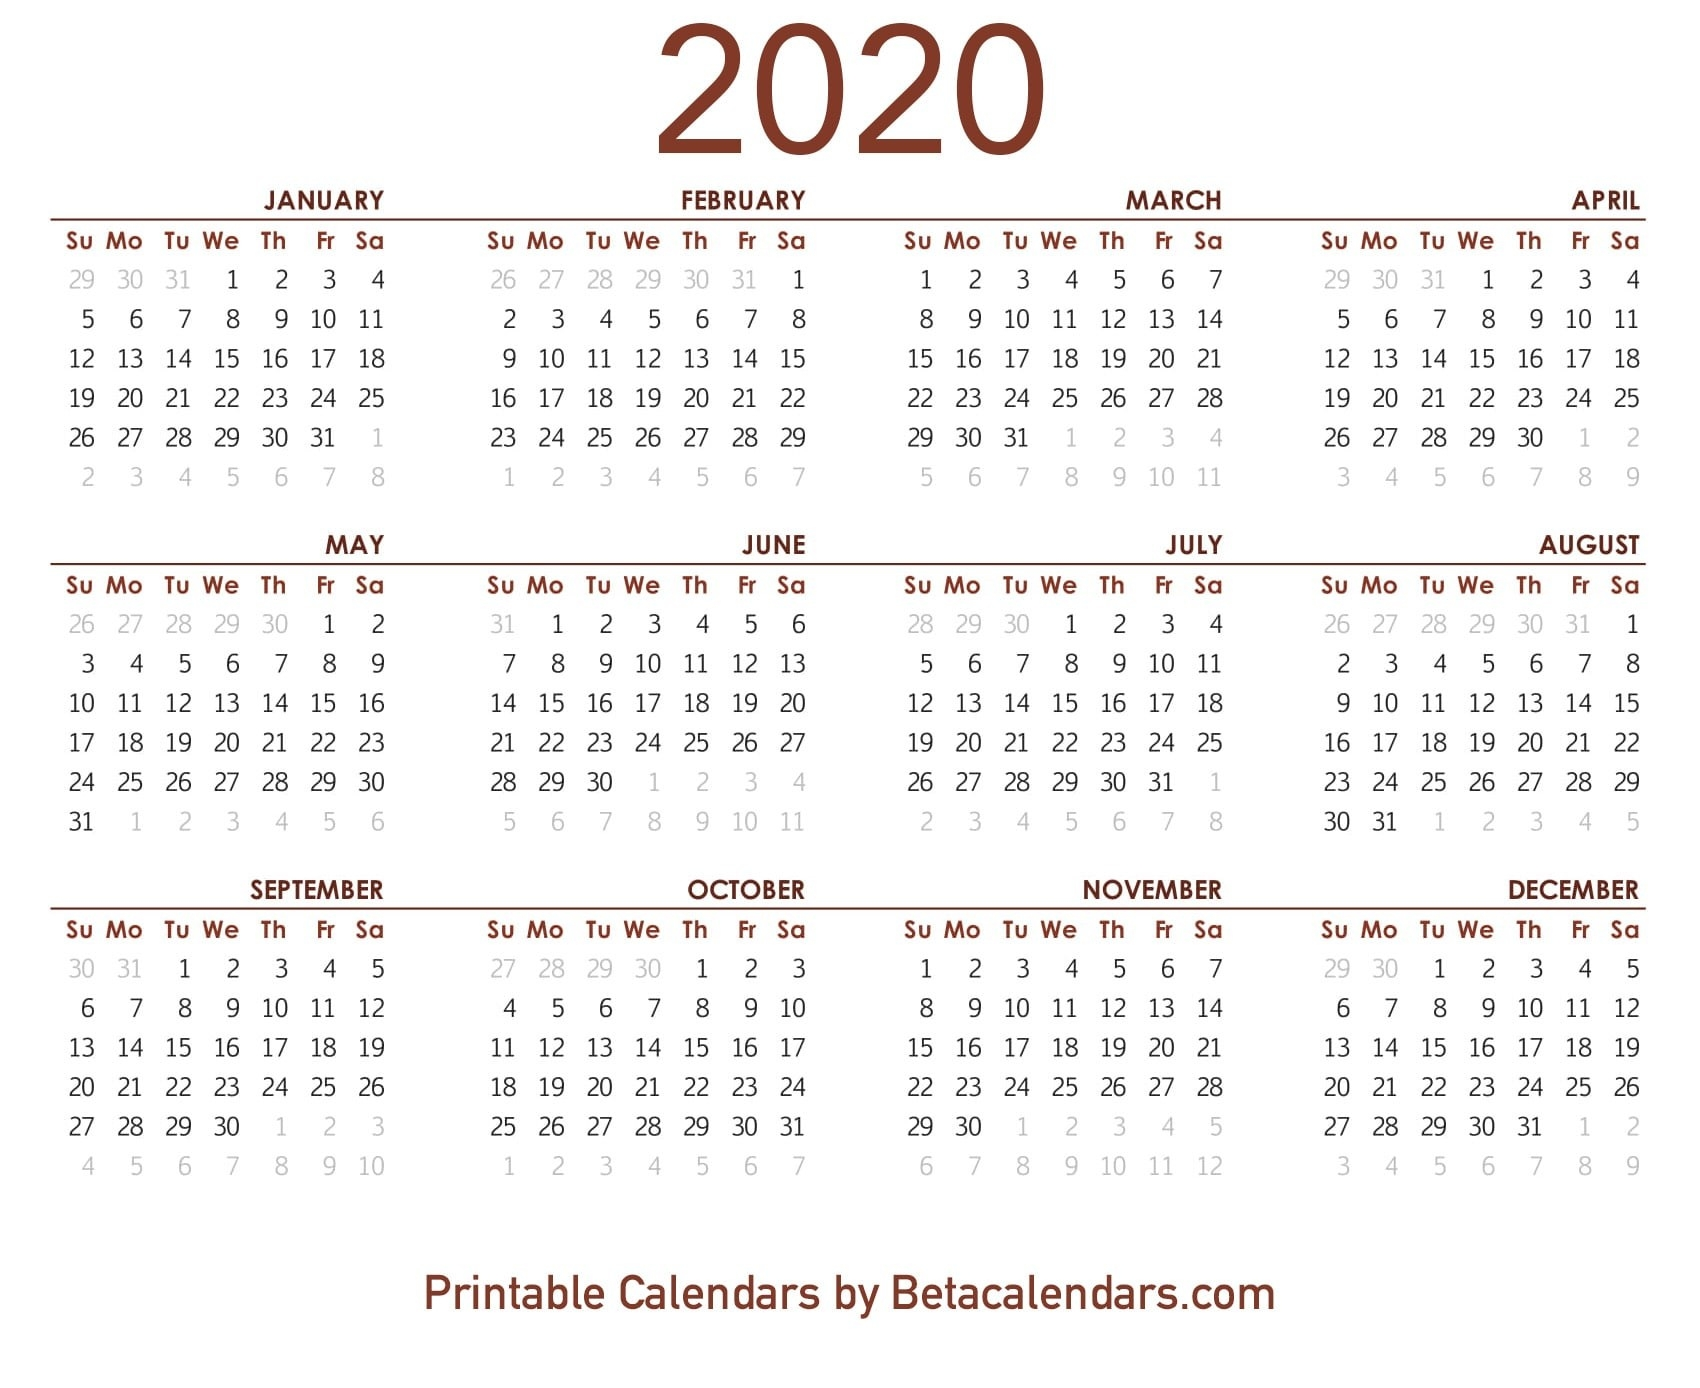 2020 Calendar - Free Printable Yearly Calendar 2020-5 Day Calander Template July 2020